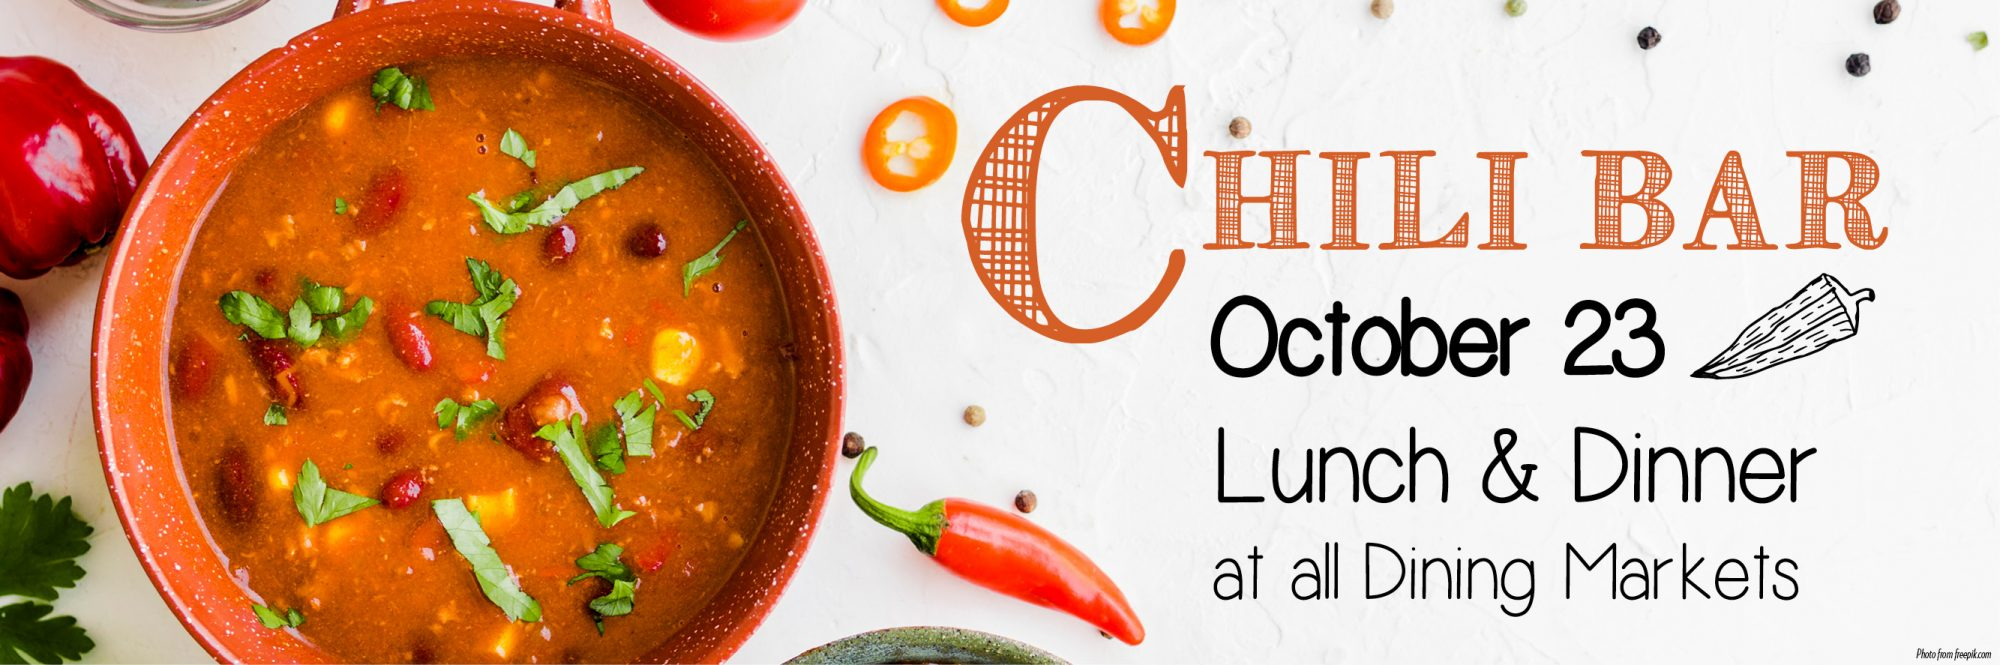 Chili Bar, October 23 at Lunch or Dinner at any of our Dining Markets